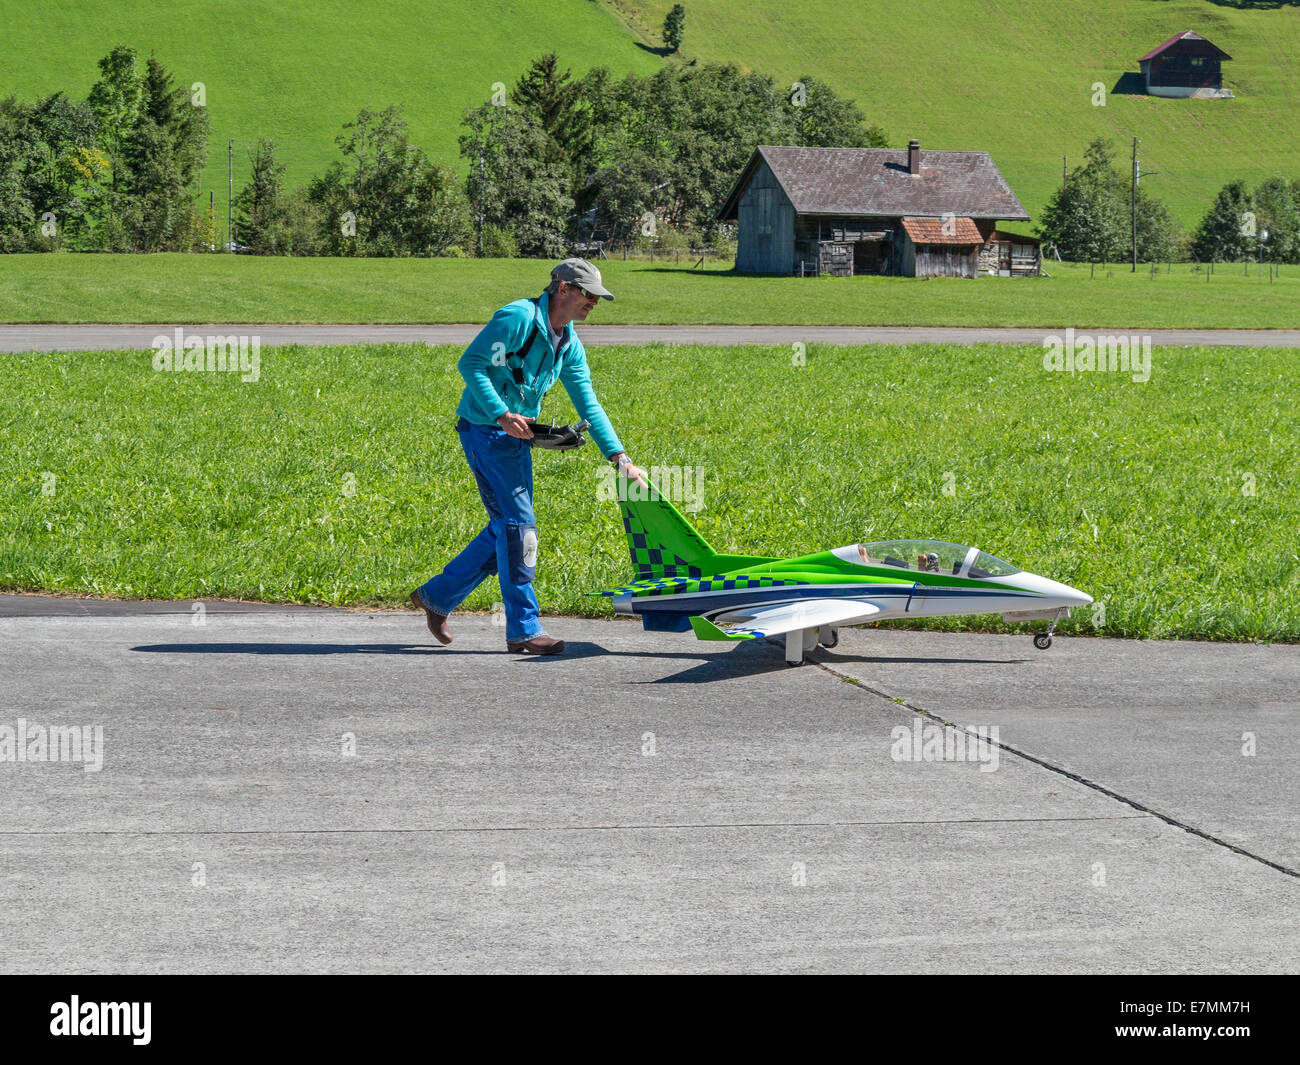 Model aircraft enthusiast wheeling his jet aircraft out ready to fly - Stock Image